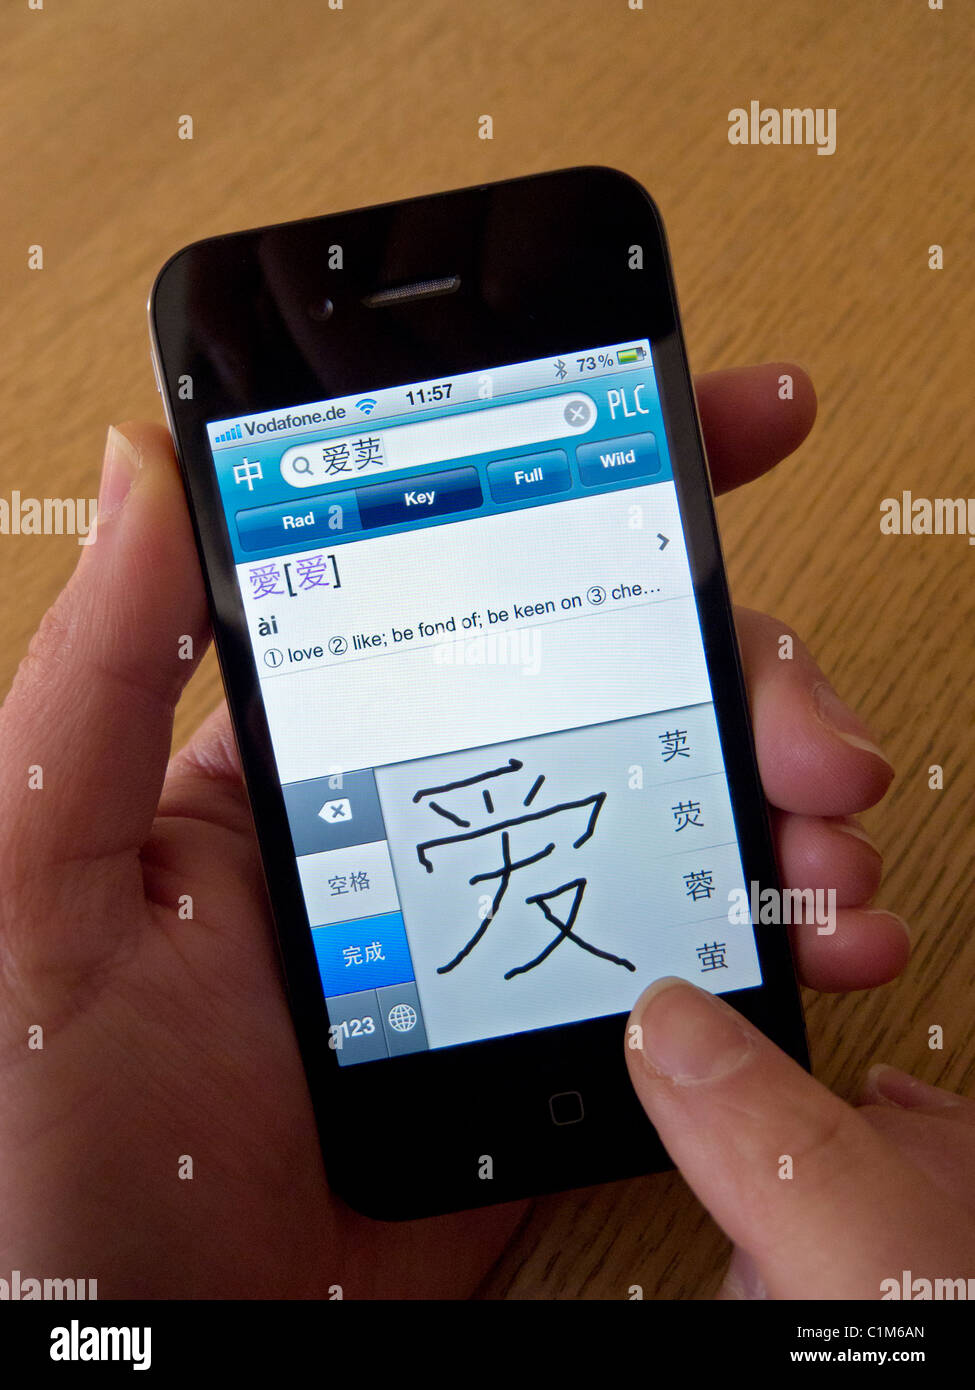 Student using app to learn mandarin Chinese characters on an Apple iphone 4G smart phone - Stock Image